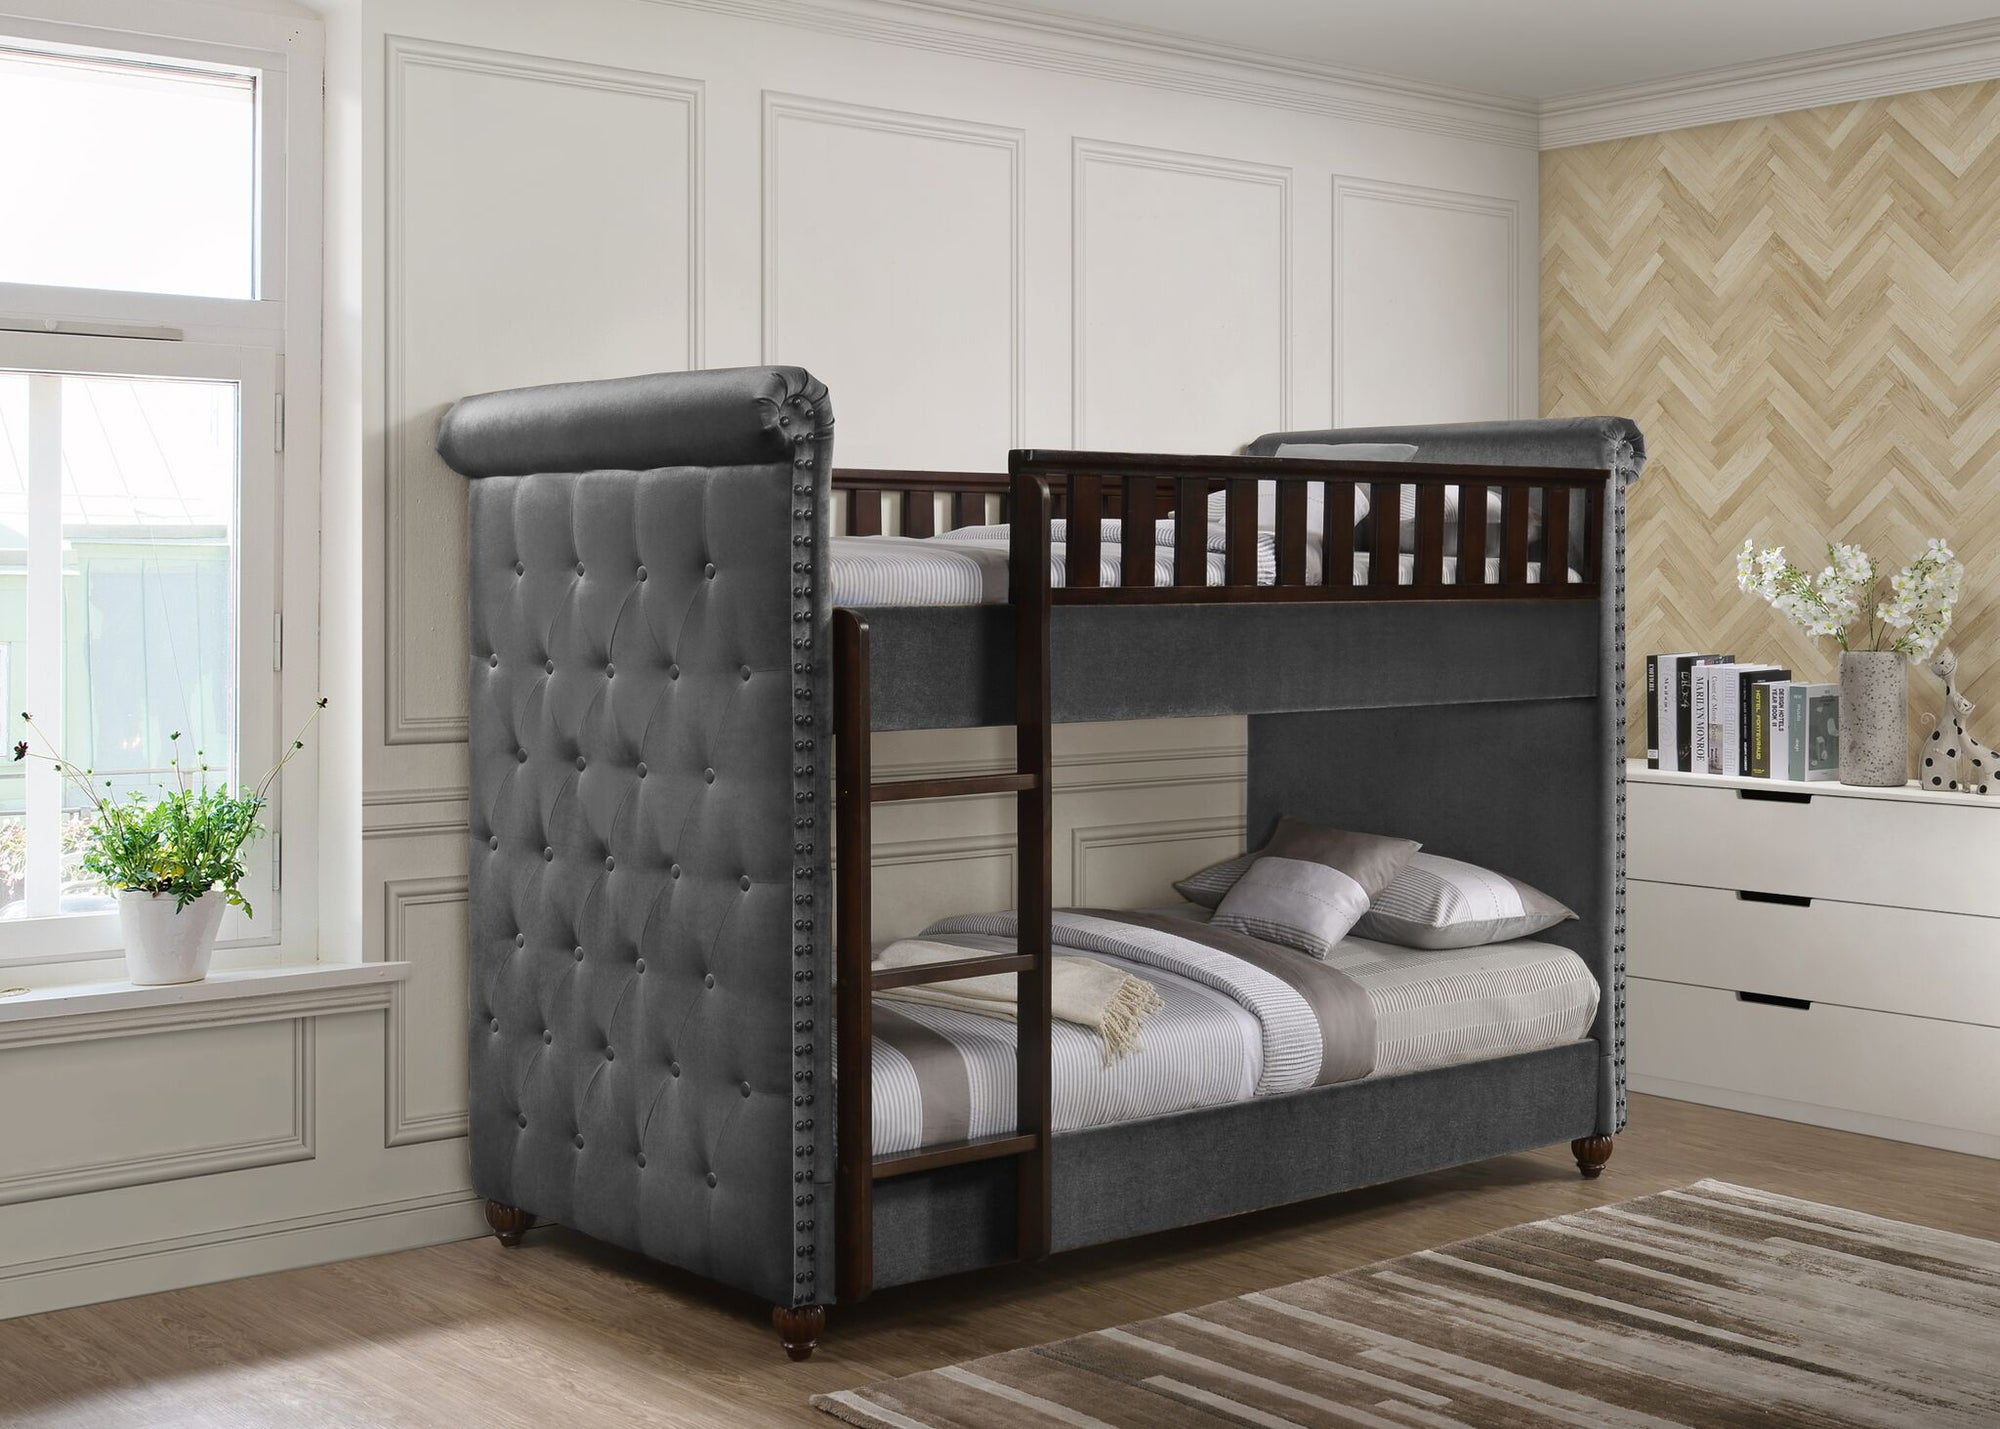 Ava Childrens Grey Velvet Fabric Chesterfield Bunk Bed Chic Concept